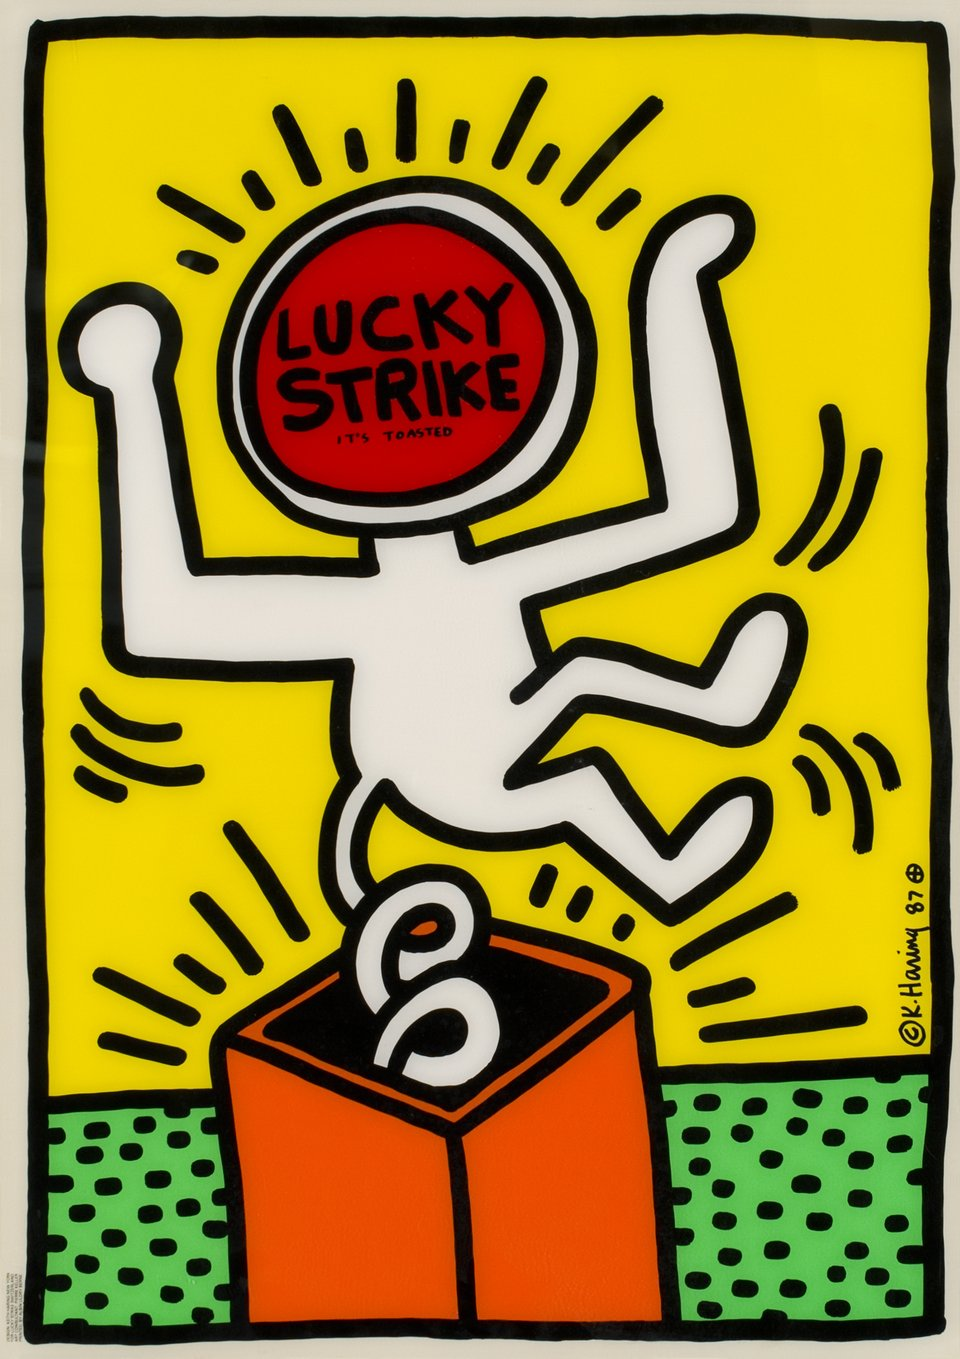 Lucky Strike, It's toasted – Vintage poster – Keith HARING – 1987